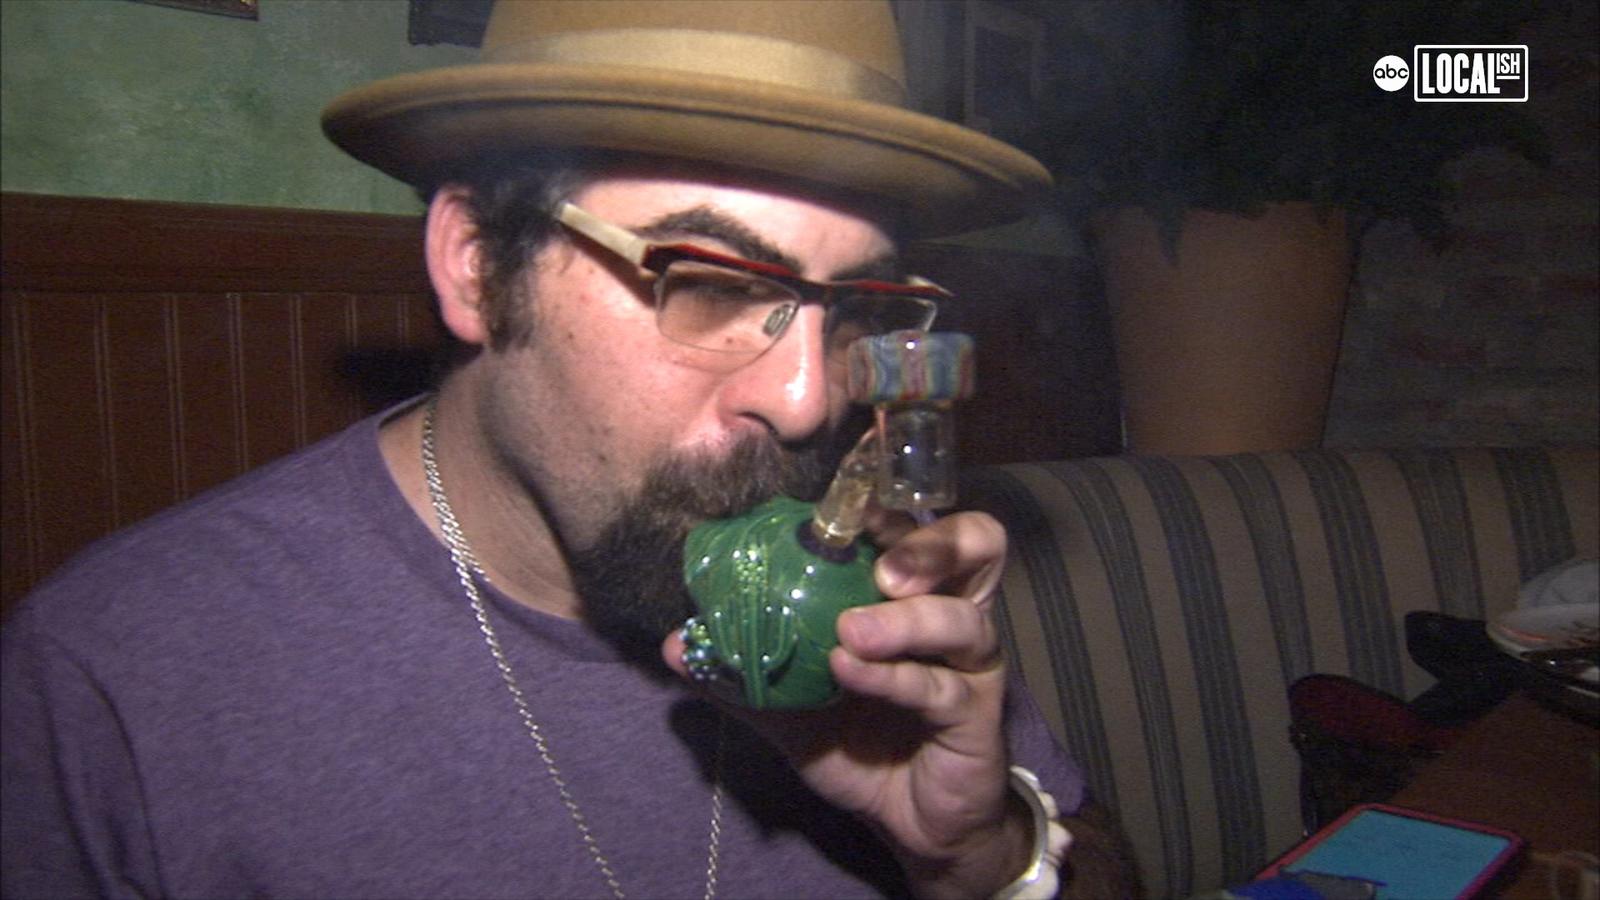 Nation's First Cannabis Cafe Opens for Business